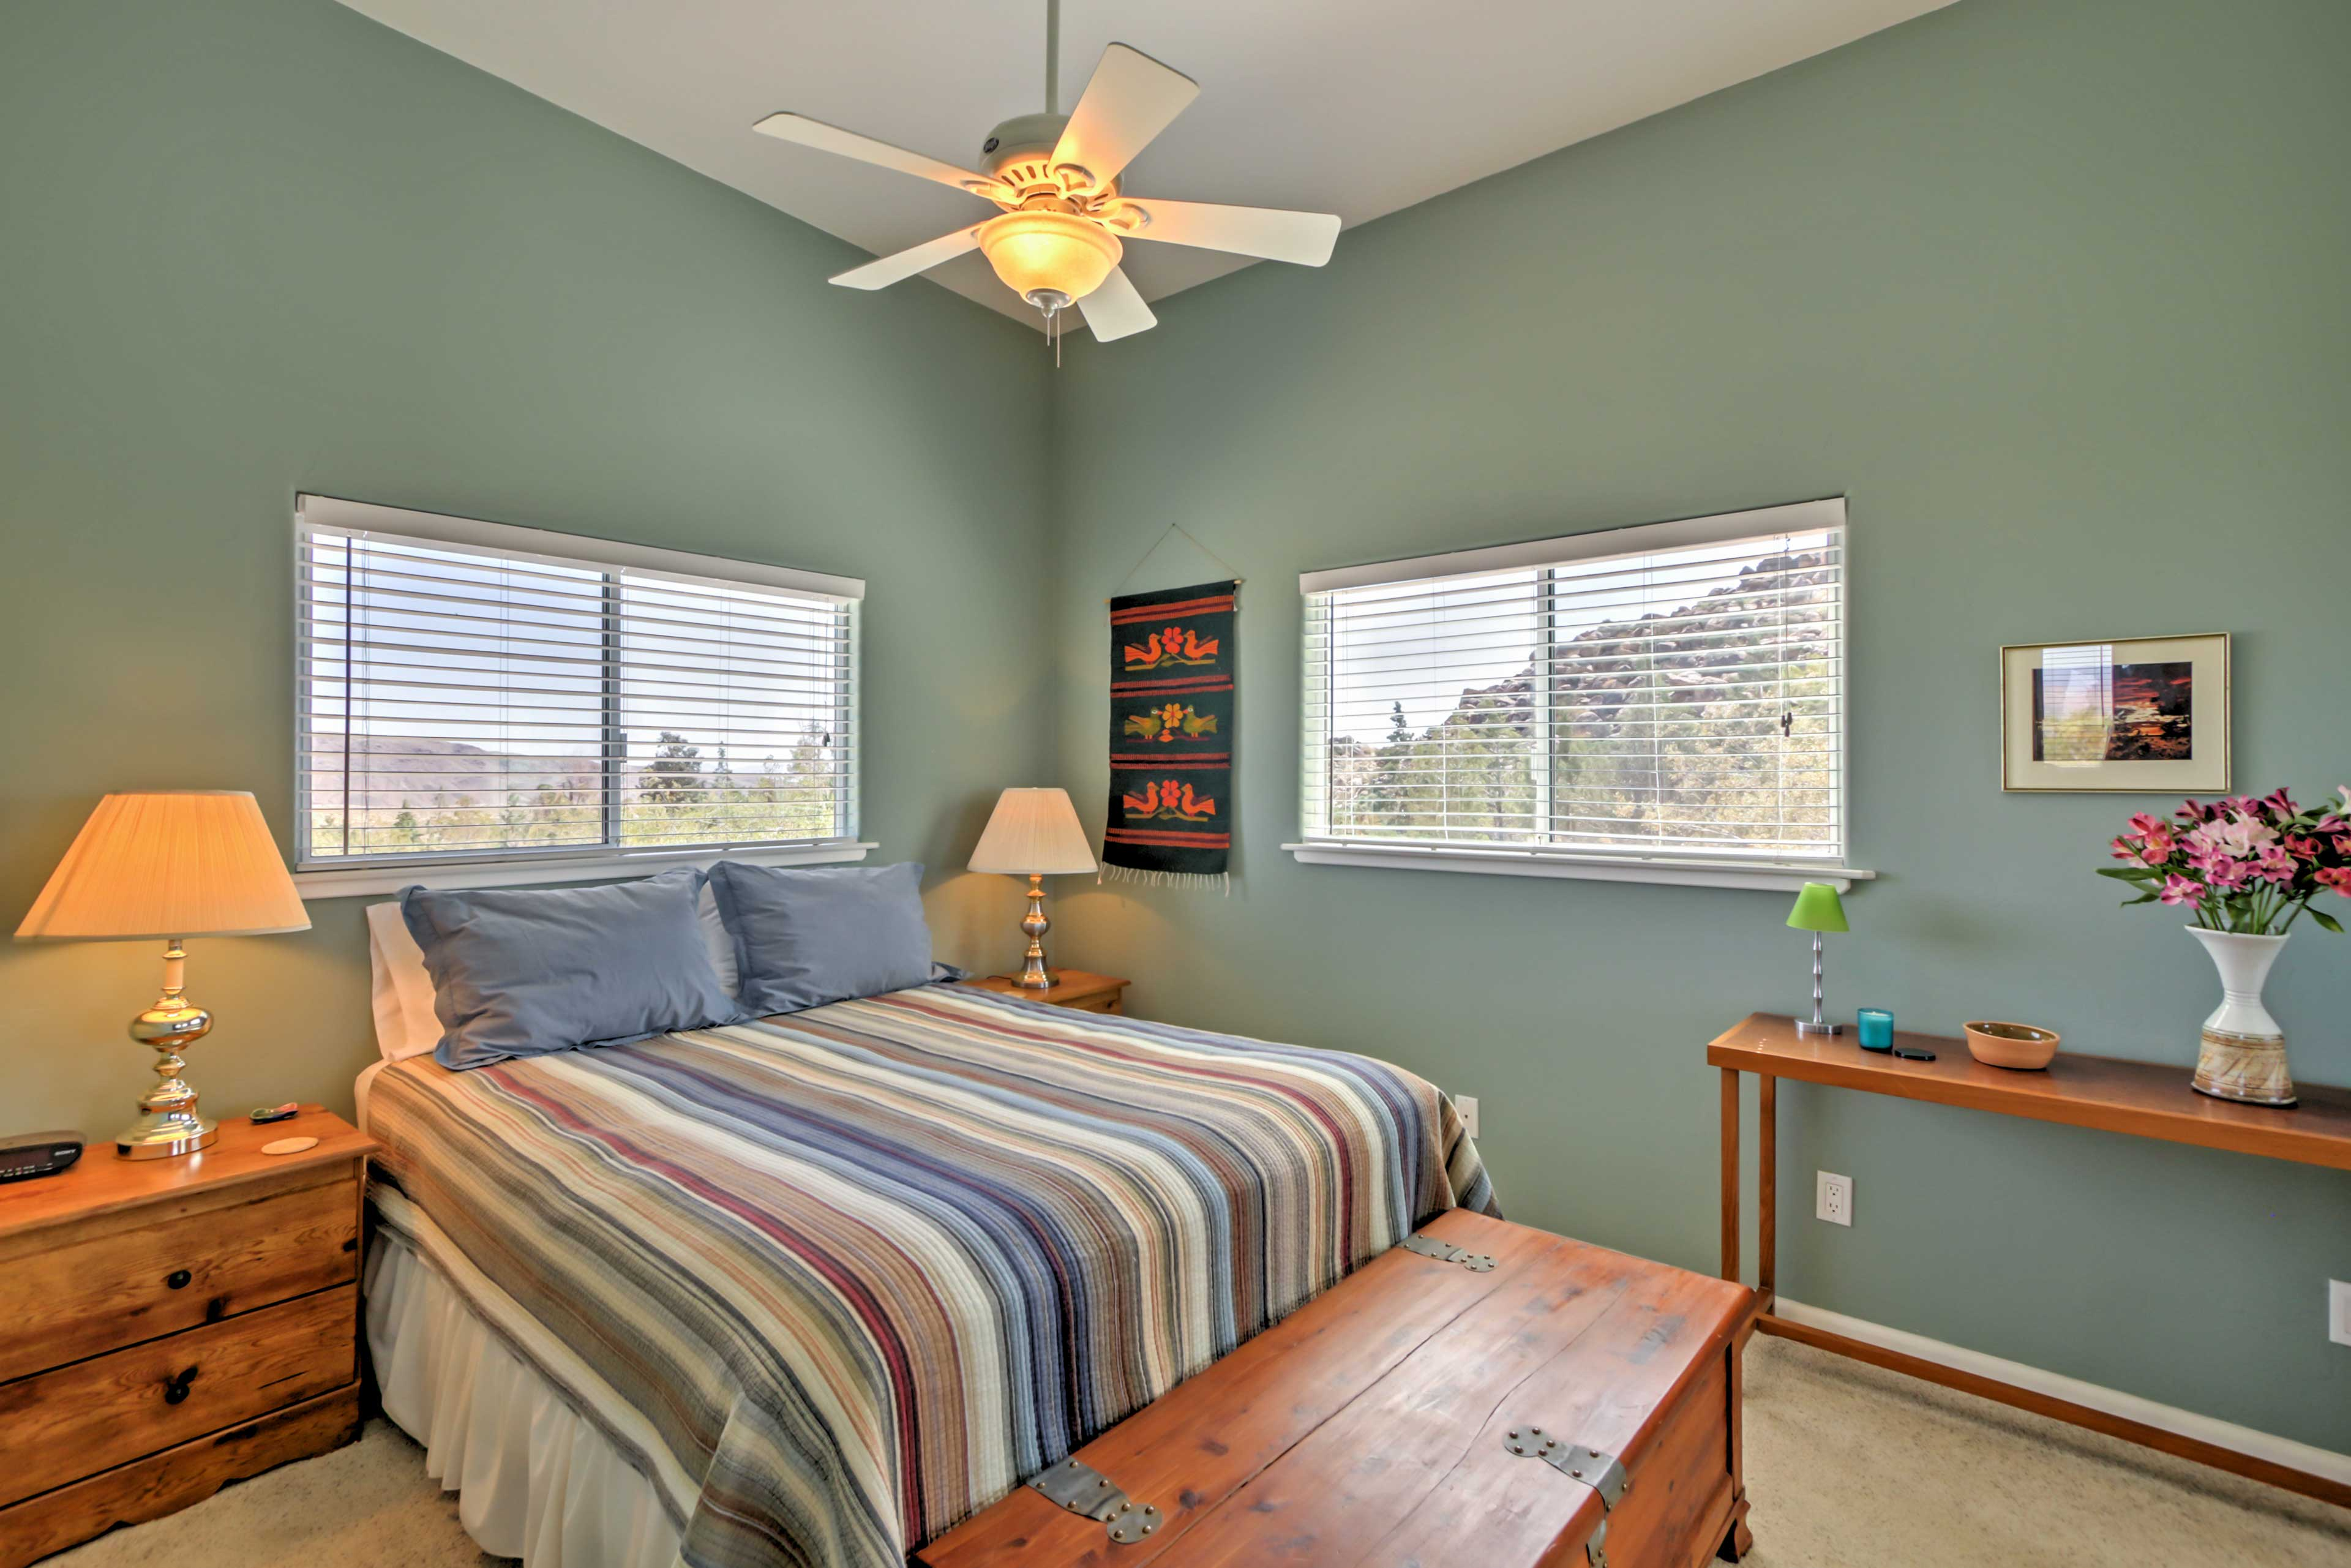 Those staying in this room will enjoy sleeping in a comfortable queen bed.